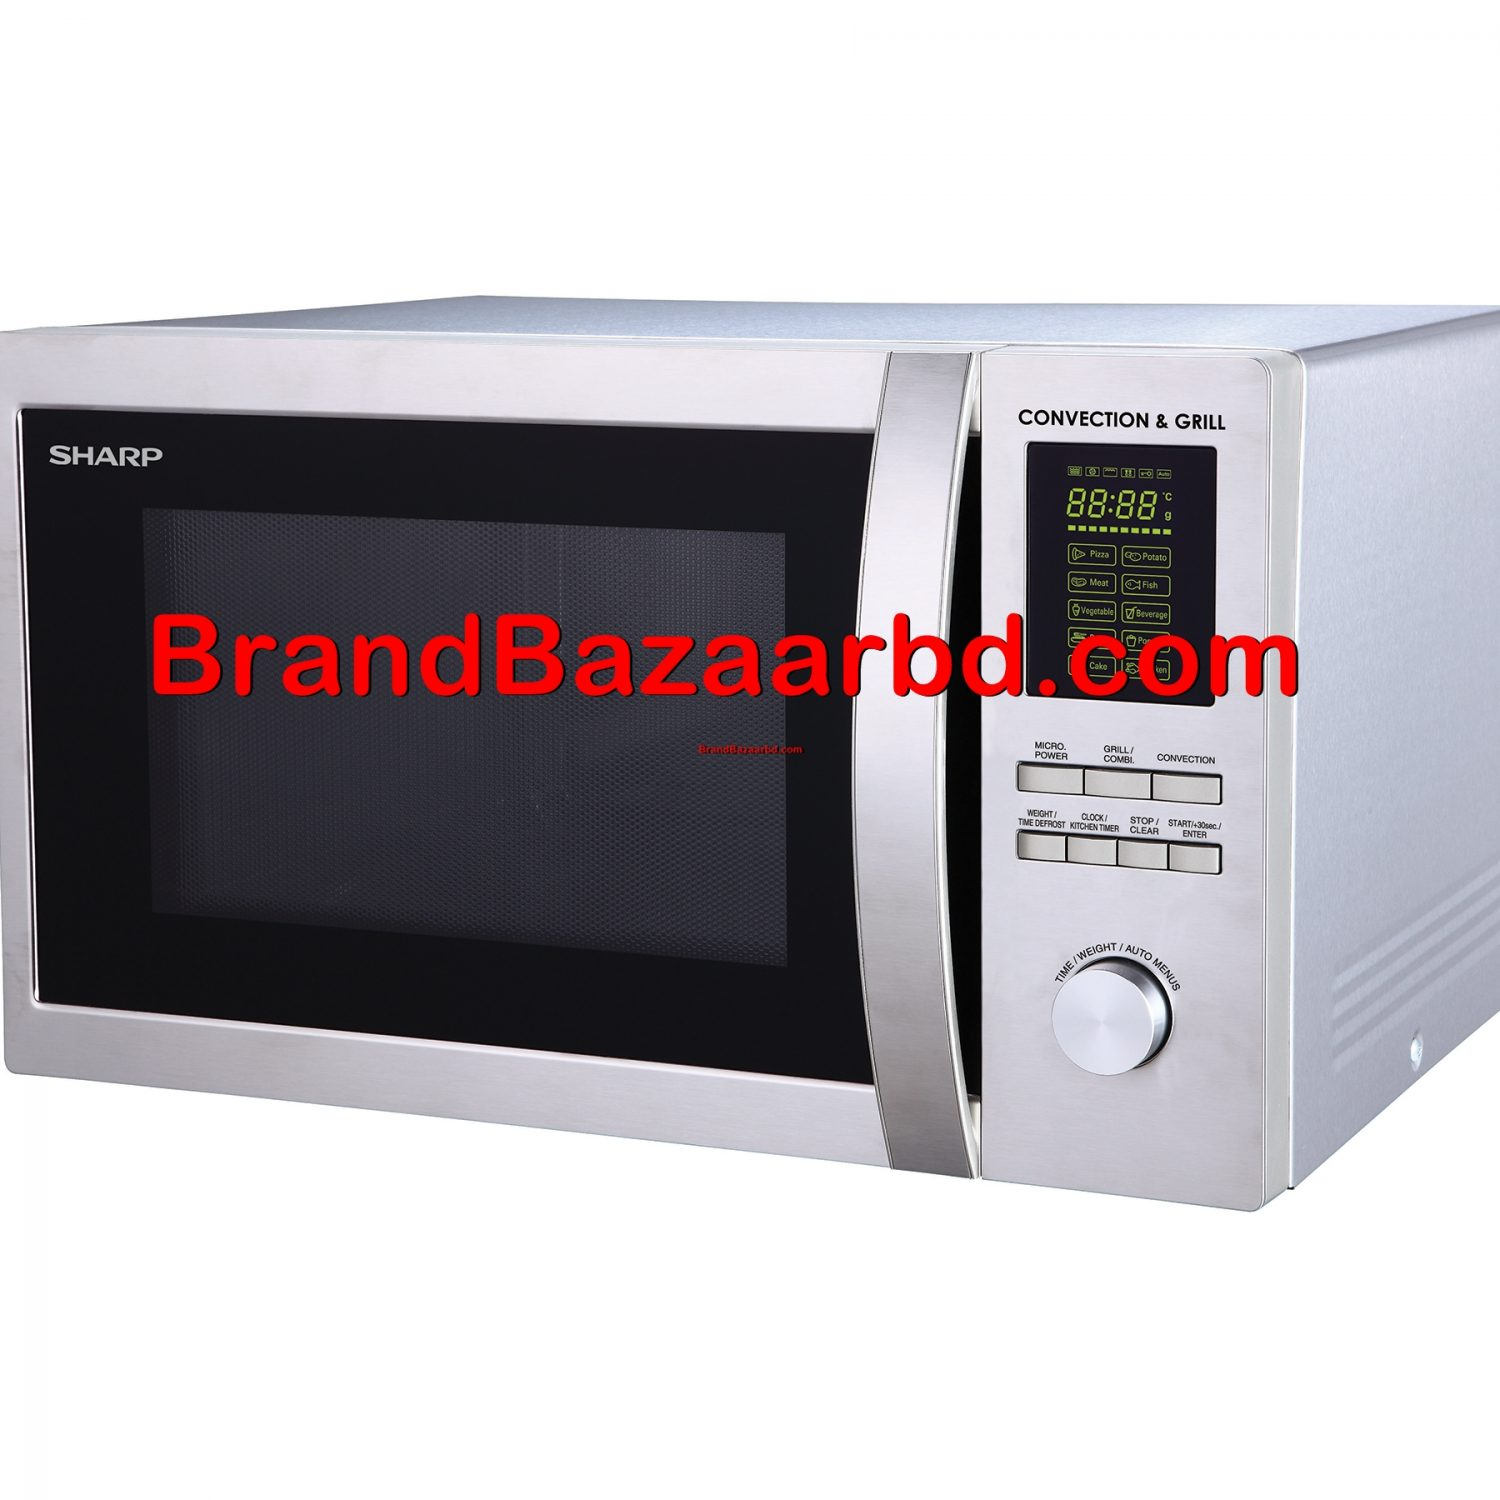 Sharp Microwave Oven Price in Bangladesh – Sharp Microwave R-94A0